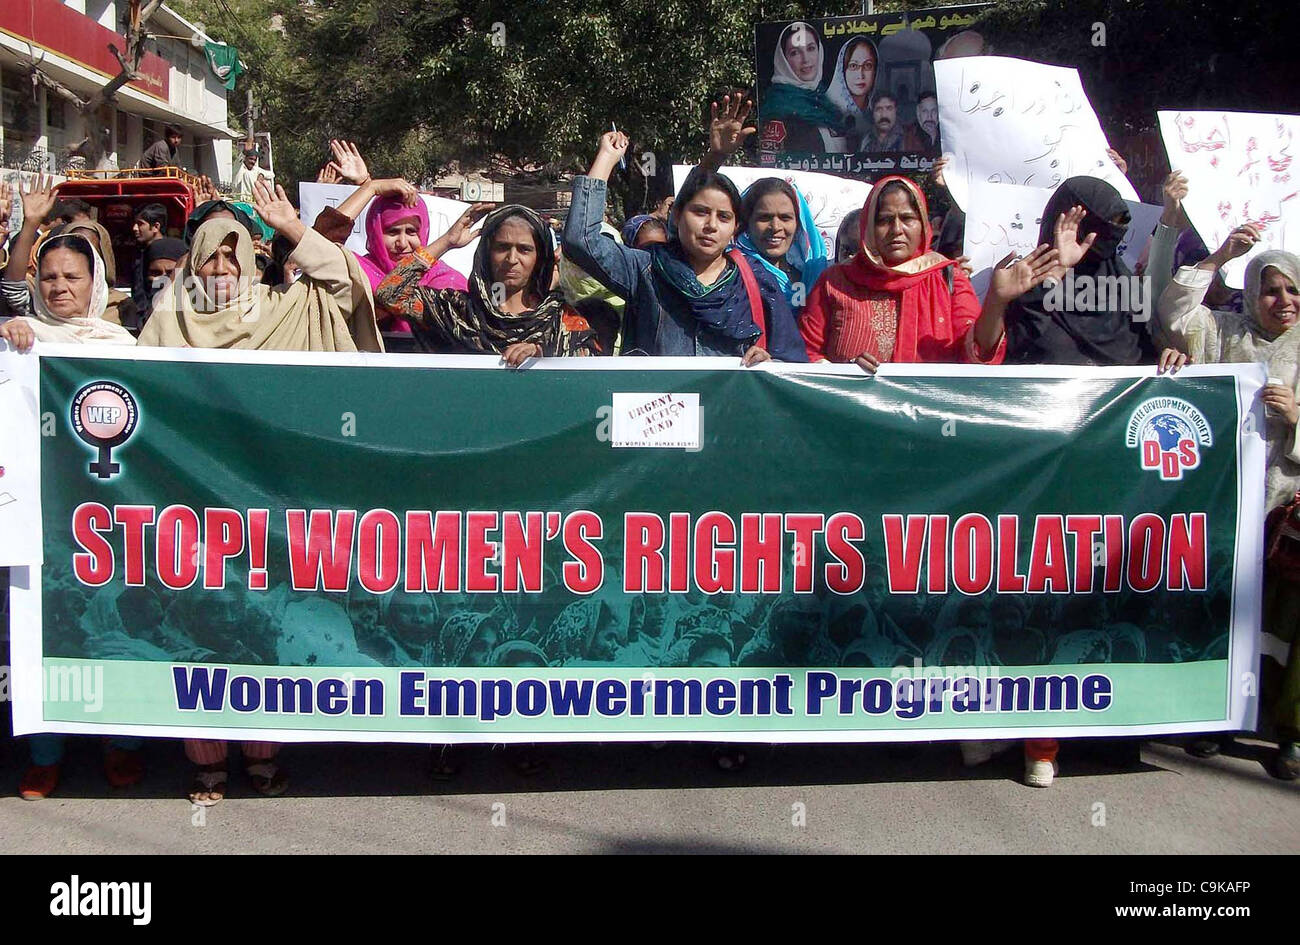 ngos and domestic violence against women in pakistan essay Free essay: the united nations declaration on the elimination of violence against women (1993) defines violence against women as any act of.